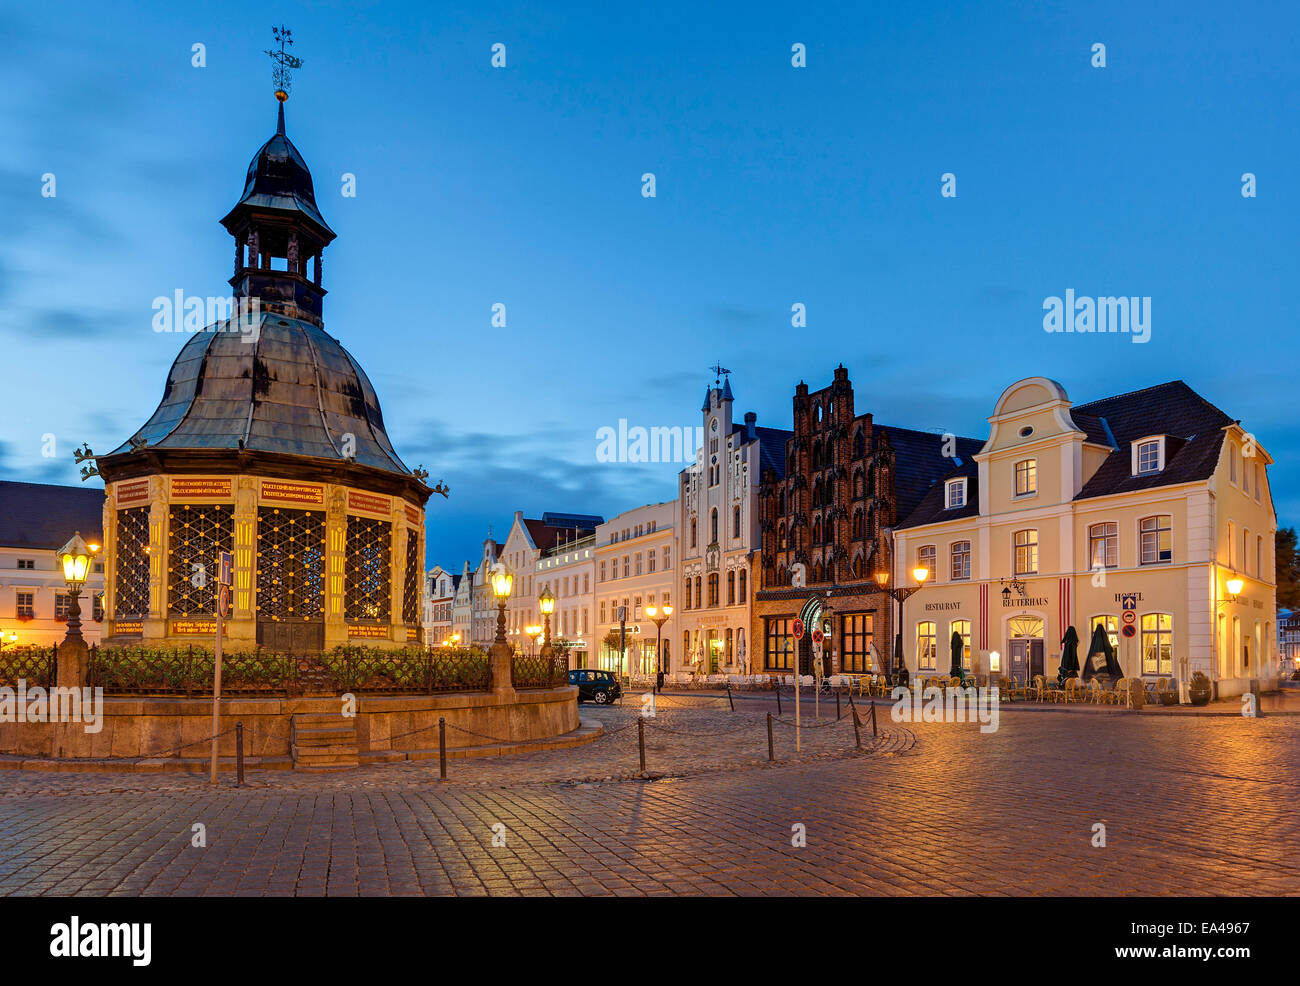 Waterworks at the market, Wismar, Mecklenburg-Western Pomerania, Germany - Stock Image